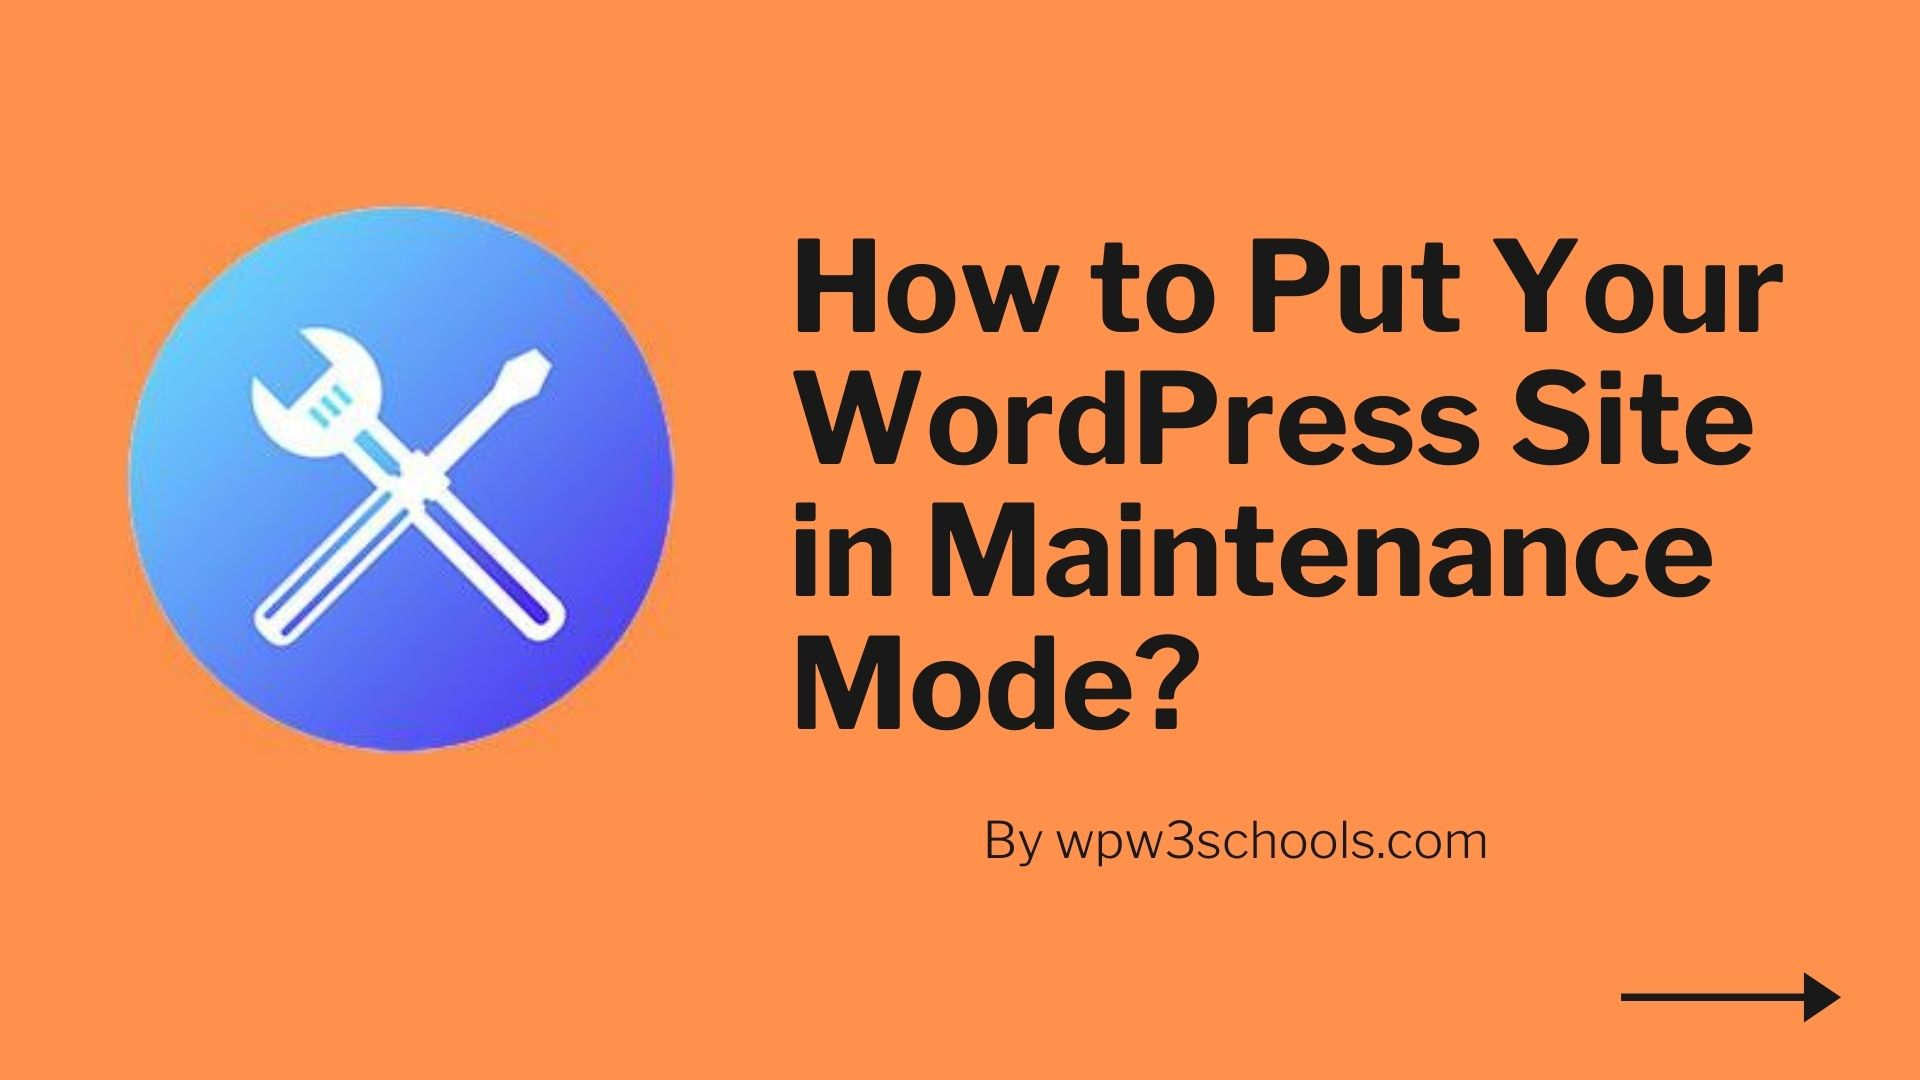 How to Put Your WordPress Site in Maintenance Mode WPw3schools Plugins and Themes